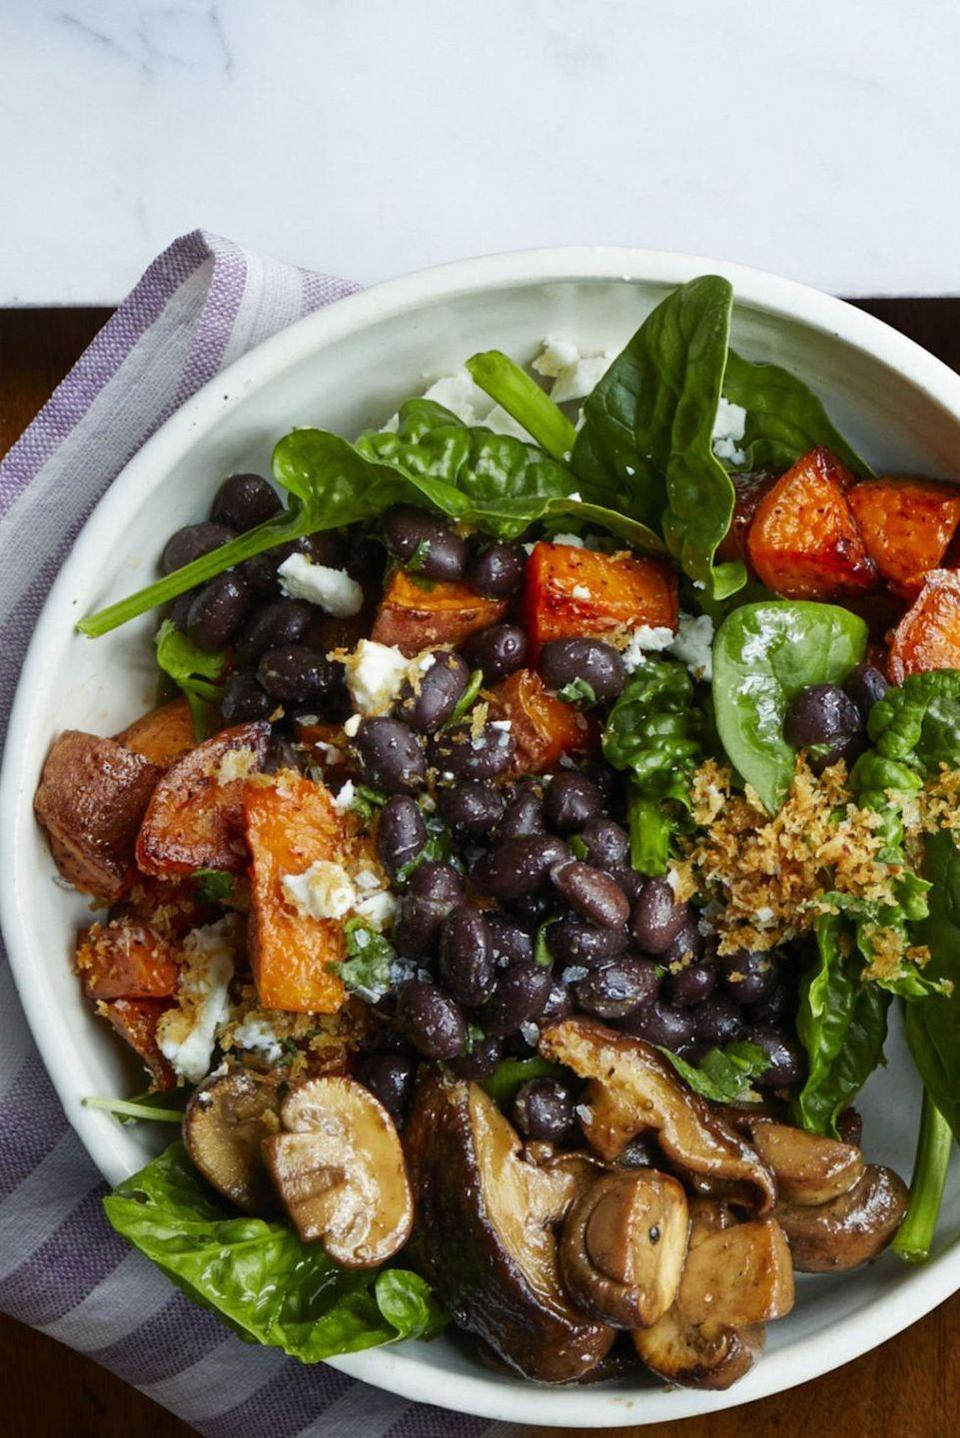 """<p>It's easy to get your daily dose of veggies when they're seasoned, marinated, and sauced-up. The Parmesan topping doesn't hurt.</p><p><em><a href=""""https://www.womansday.com/food-recipes/food-drinks/recipes/a61046/roasted-vegetable-bowl-recipe/"""" rel=""""nofollow noopener"""" target=""""_blank"""" data-ylk=""""slk:Get the recipe from Woman's Day »"""" class=""""link rapid-noclick-resp"""">Get the recipe from Woman's Day »</a></em></p>"""